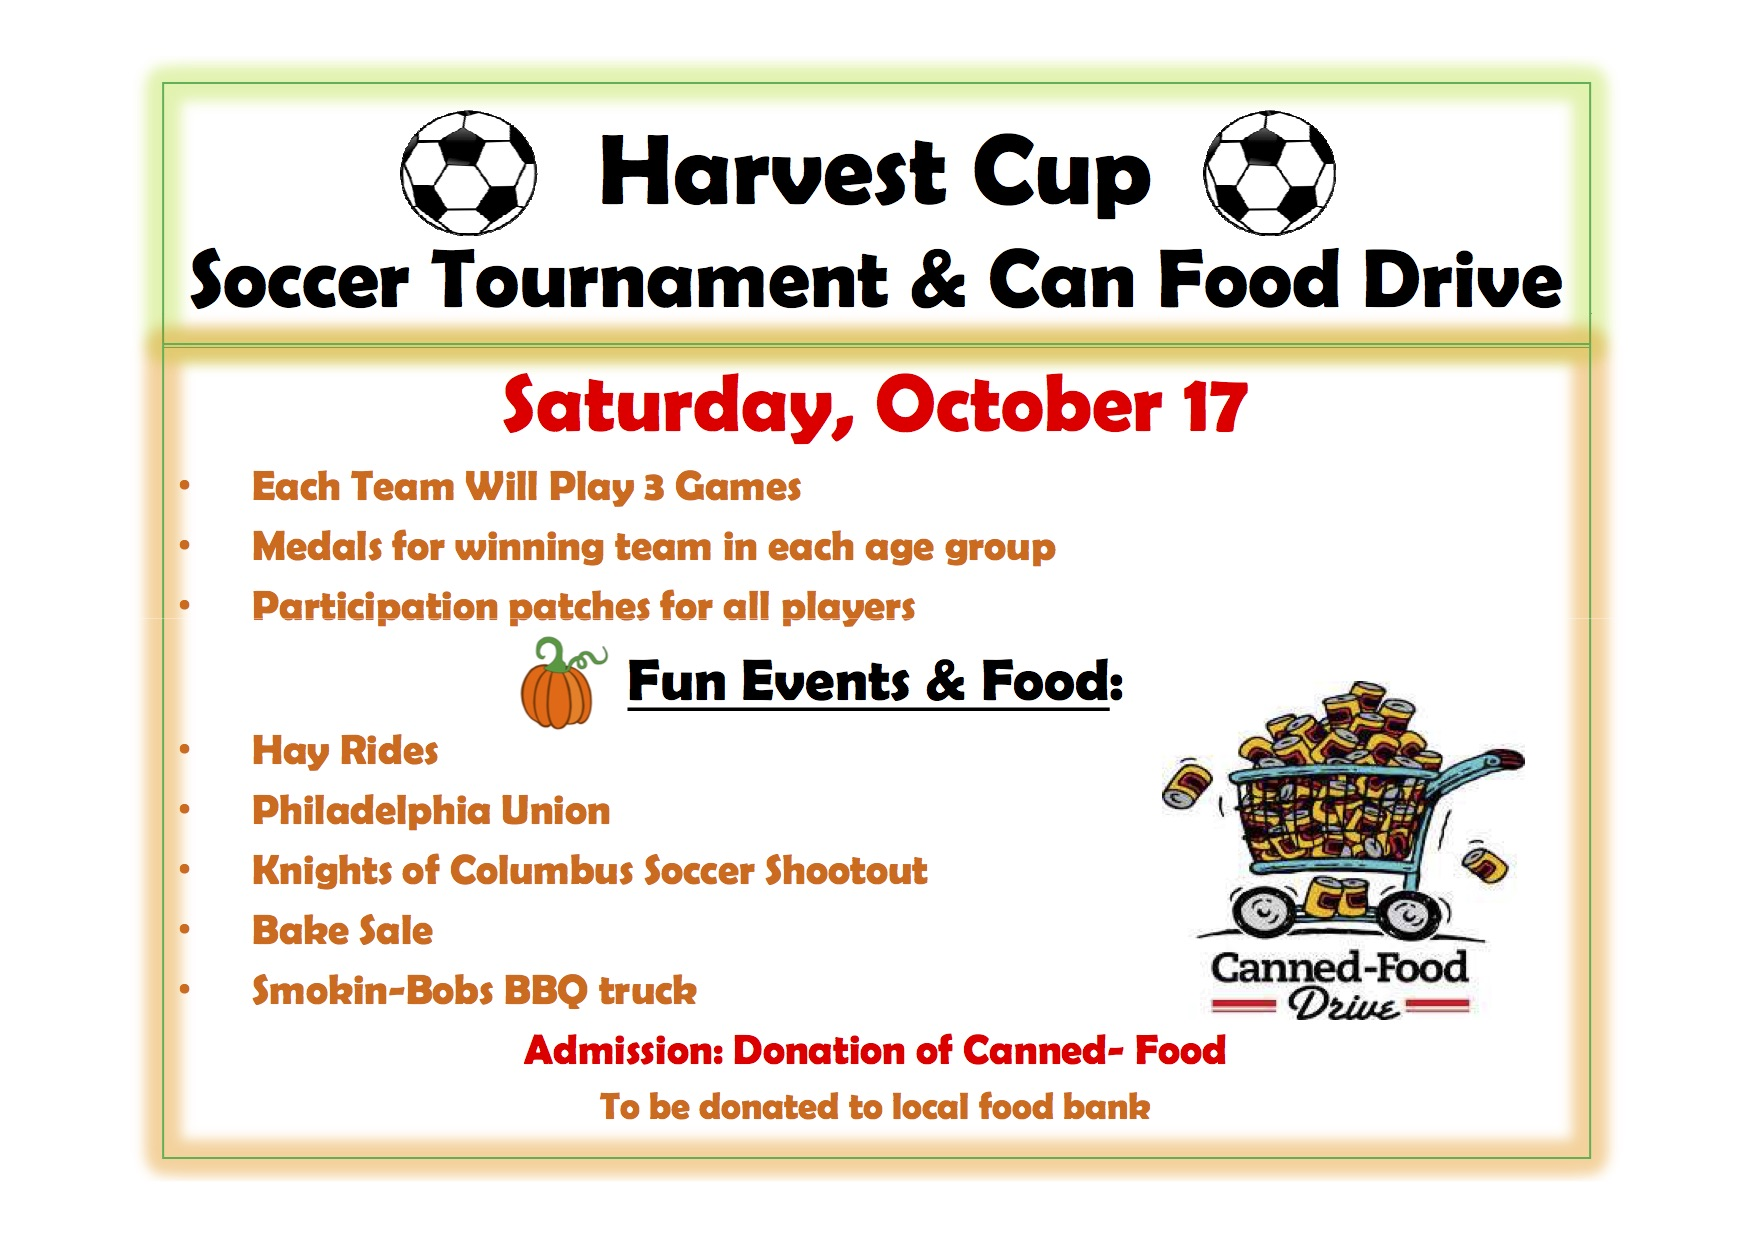 Harvest Cup 2015